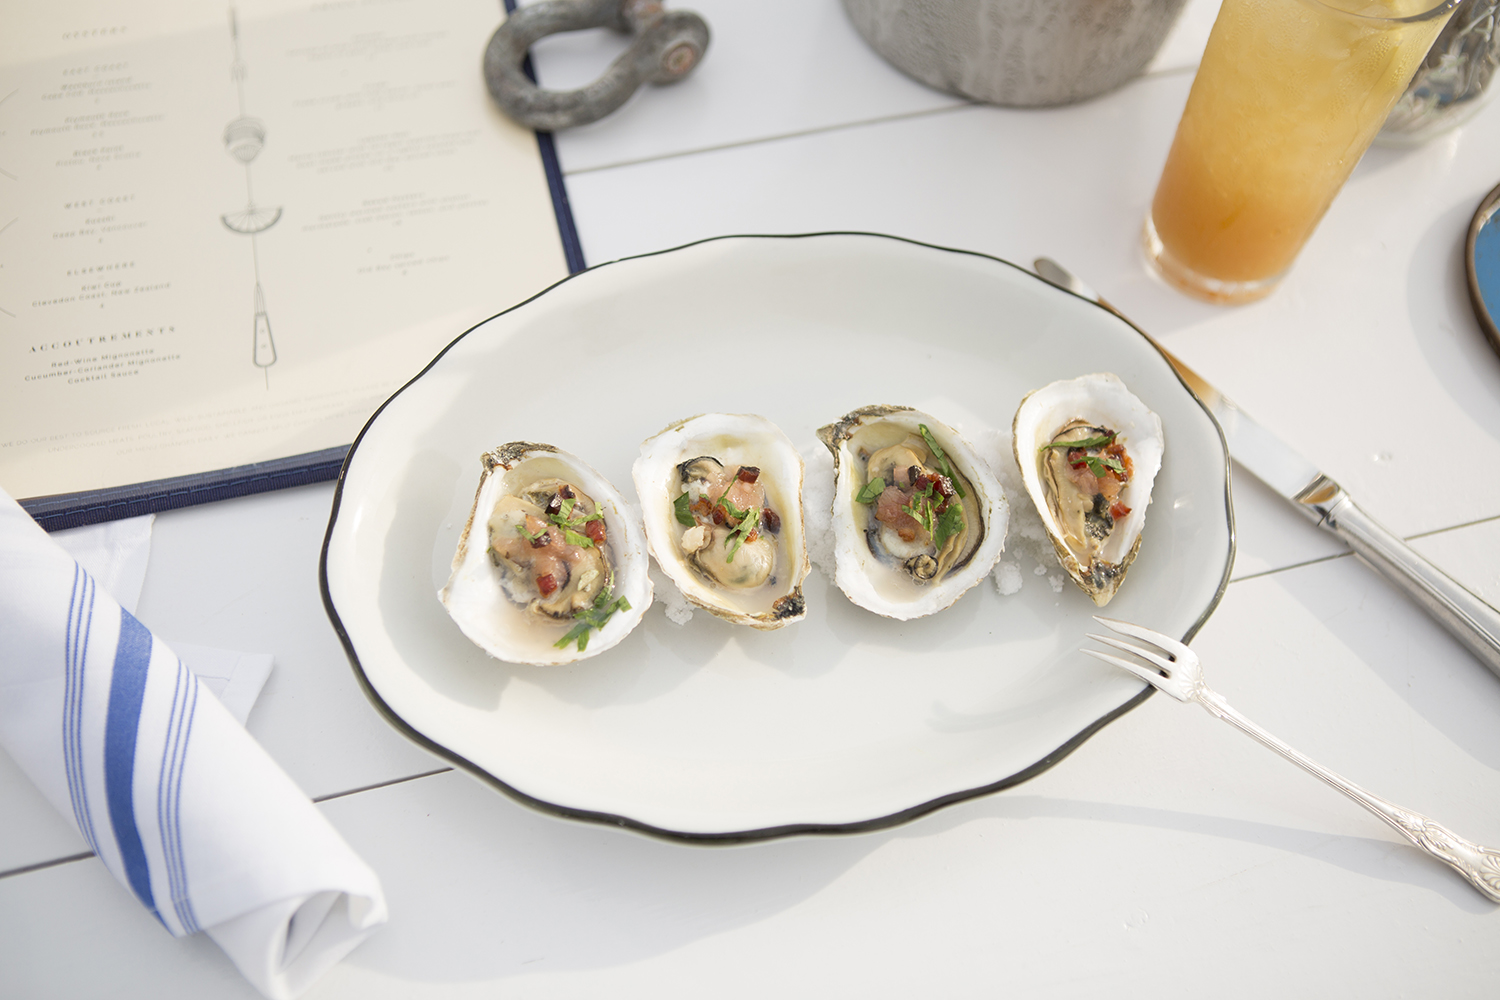 Baked oysters with shallot marmalade, slab bacon, lemon and parsley